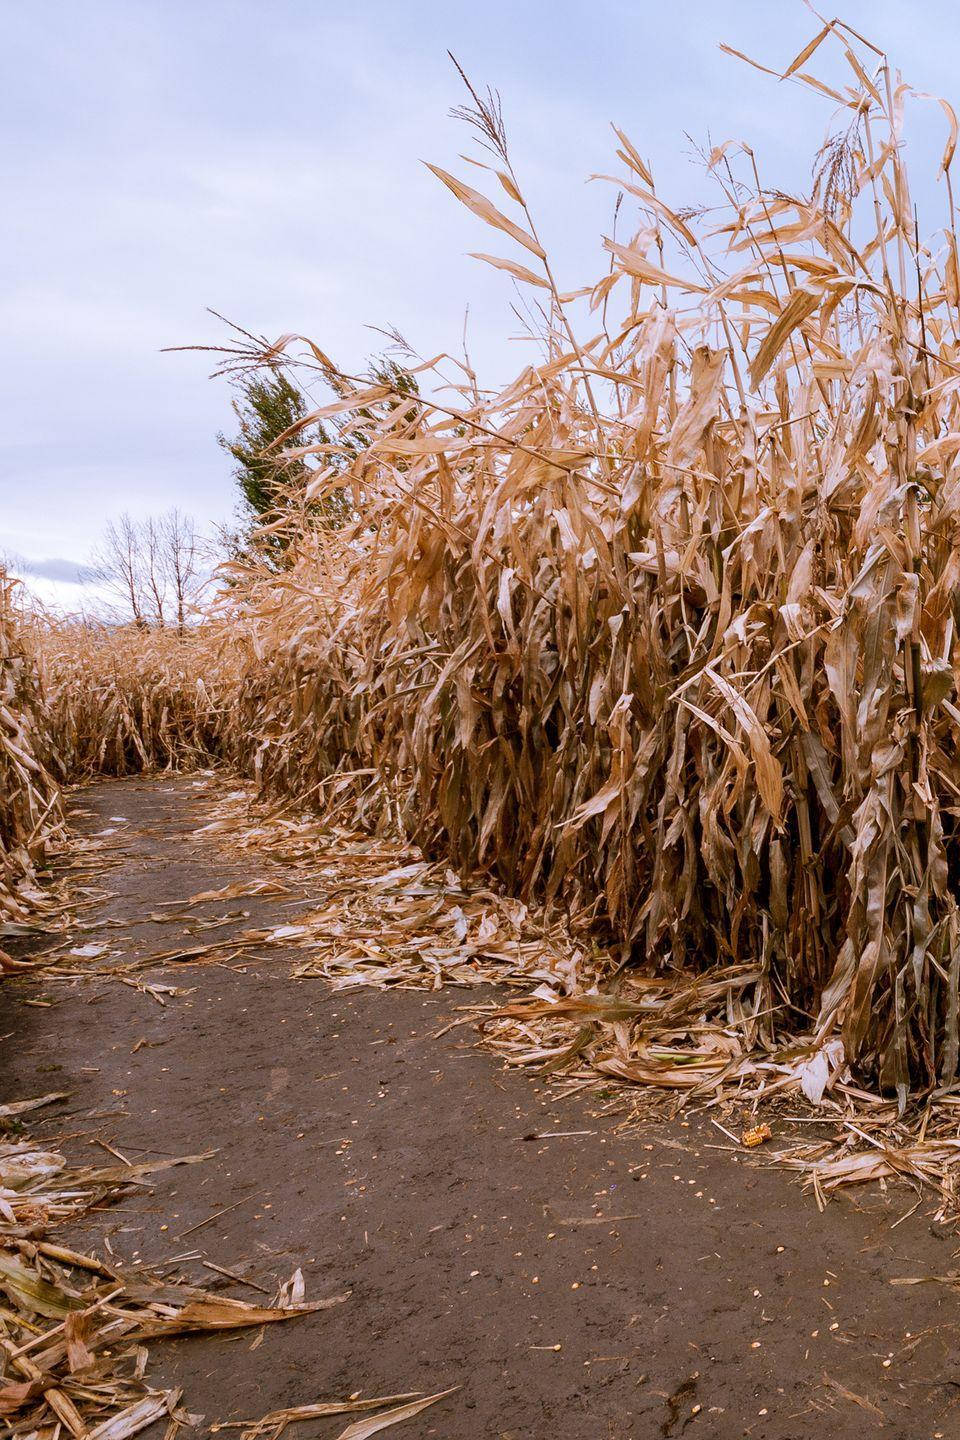 """<p>Beginning in September, the <a href=""""https://newberrycornfieldmaze.com/"""" rel=""""nofollow noopener"""" target=""""_blank"""" data-ylk=""""slk:Newberry Cornfield Maze"""" class=""""link rapid-noclick-resp"""">Newberry Cornfield Maze</a> transforms into a fun spot for families during the day, and a chill-inducing haunted attraction by night. While you're at the Gainesville area cornfield, be sure to take your kids on their scenic hayride, and when the sun sets, head towards their haunted house.</p><p><a class=""""link rapid-noclick-resp"""" href=""""https://go.redirectingat.com?id=74968X1596630&url=https%3A%2F%2Fwww.tripadvisor.com%2FAttractions-g34472-Activities-Newberry_Florida.html&sref=https%3A%2F%2Fwww.countryliving.com%2Flife%2Ftravel%2Fg22717241%2Fcorn-maze-near-me%2F"""" rel=""""nofollow noopener"""" target=""""_blank"""" data-ylk=""""slk:PLAN YOUR TRIP"""">PLAN YOUR TRIP</a></p>"""